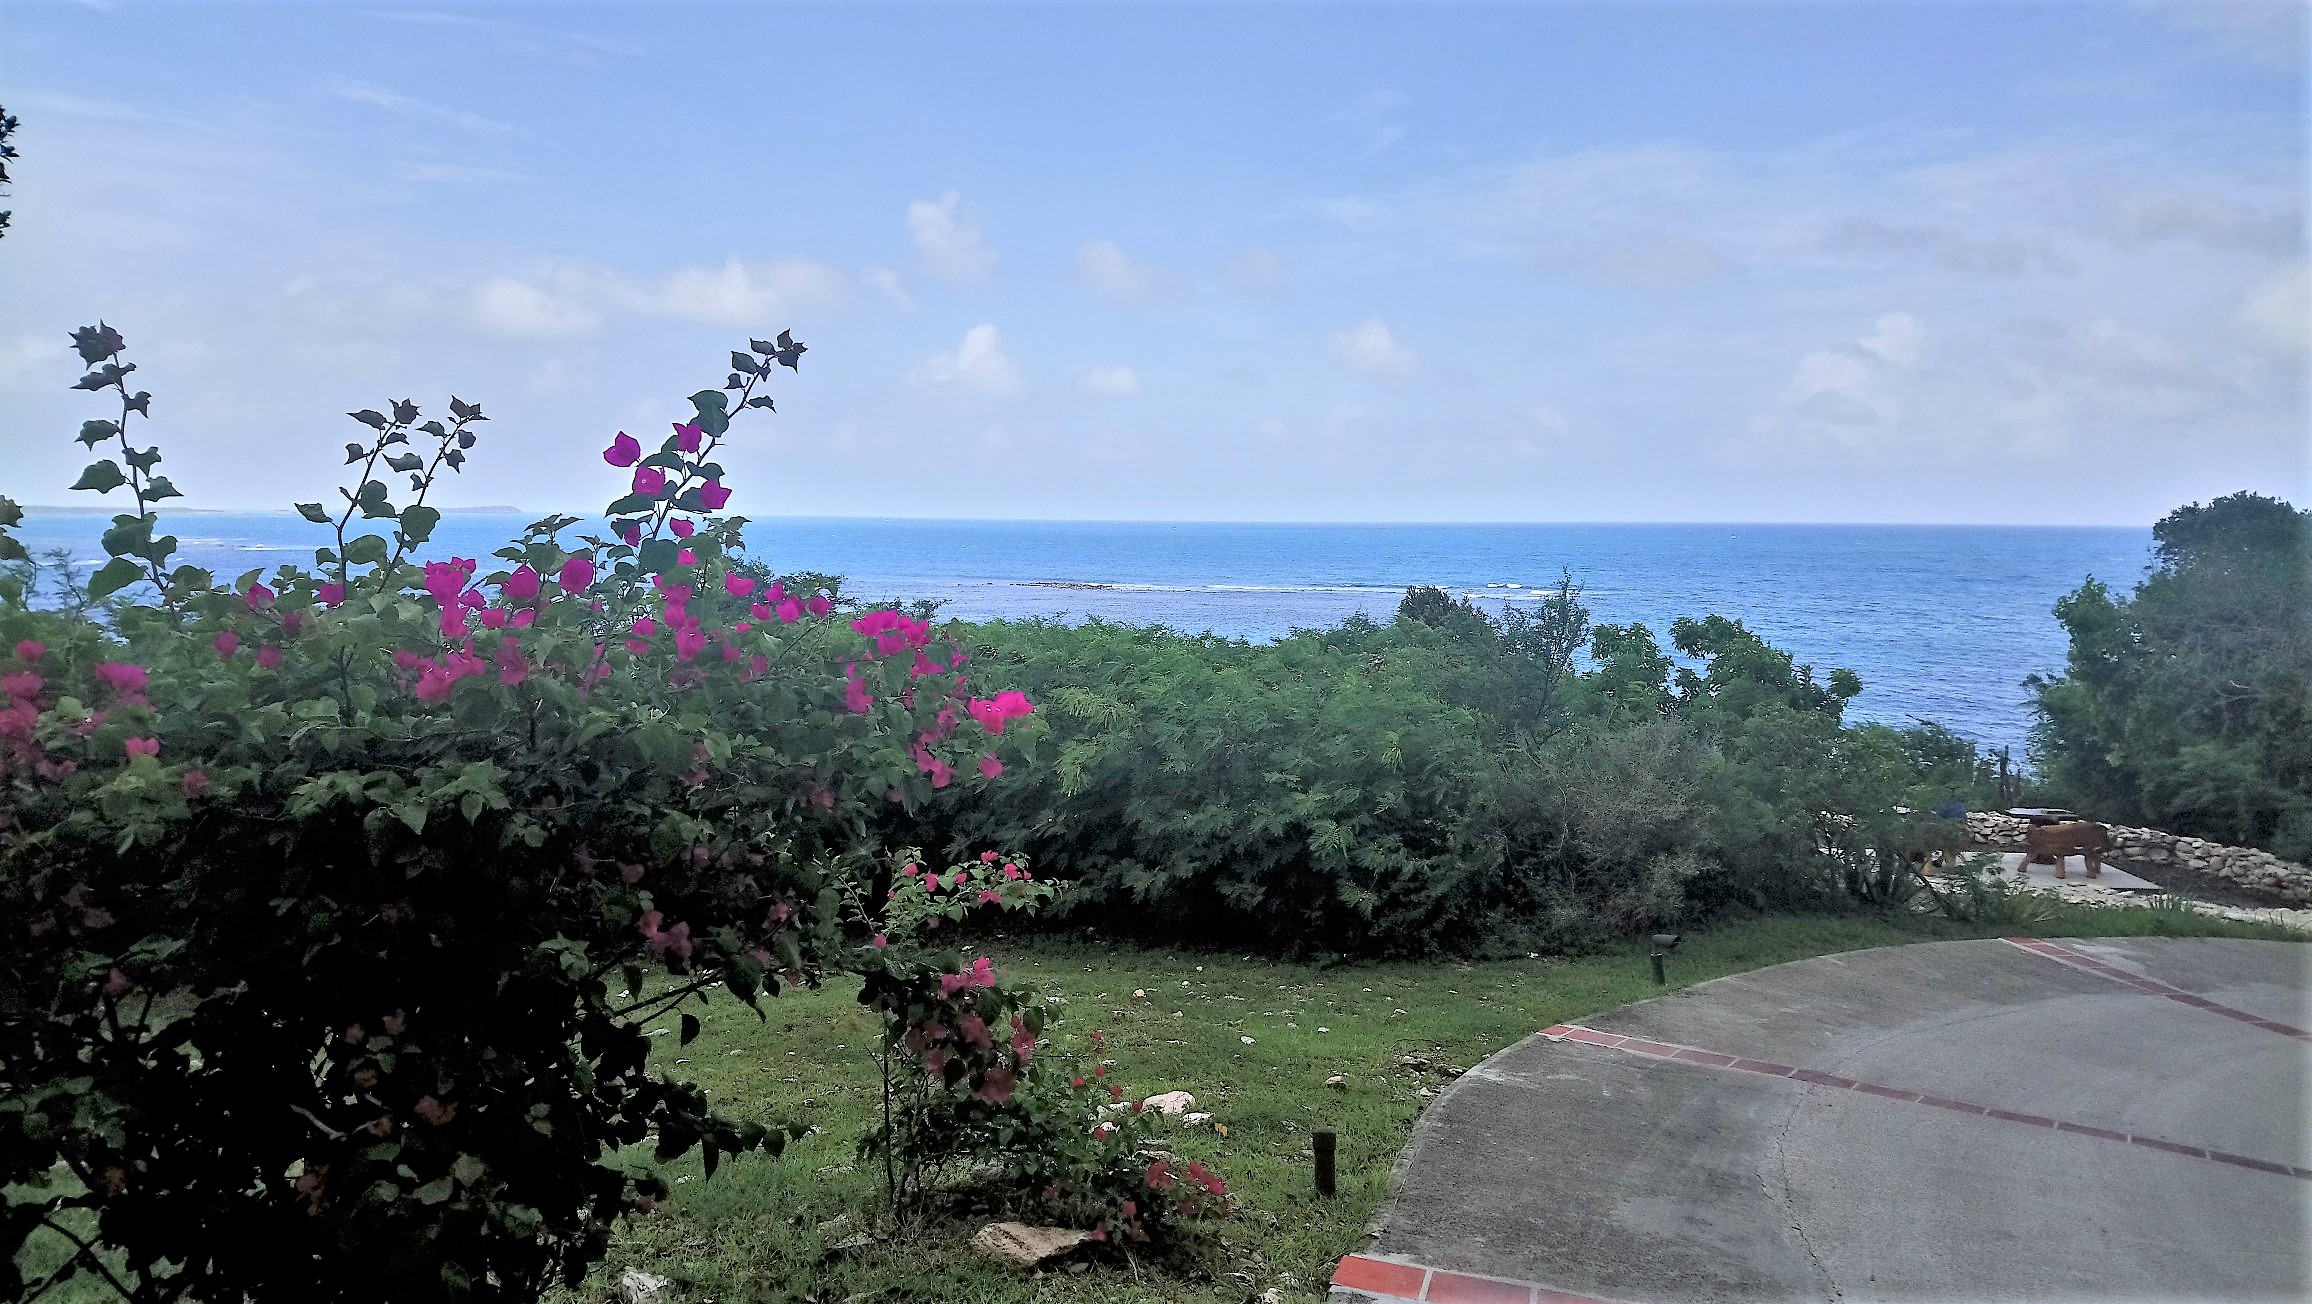 The view from the top of the hill at The Outhouse in Pineapple Beach Club Antigua